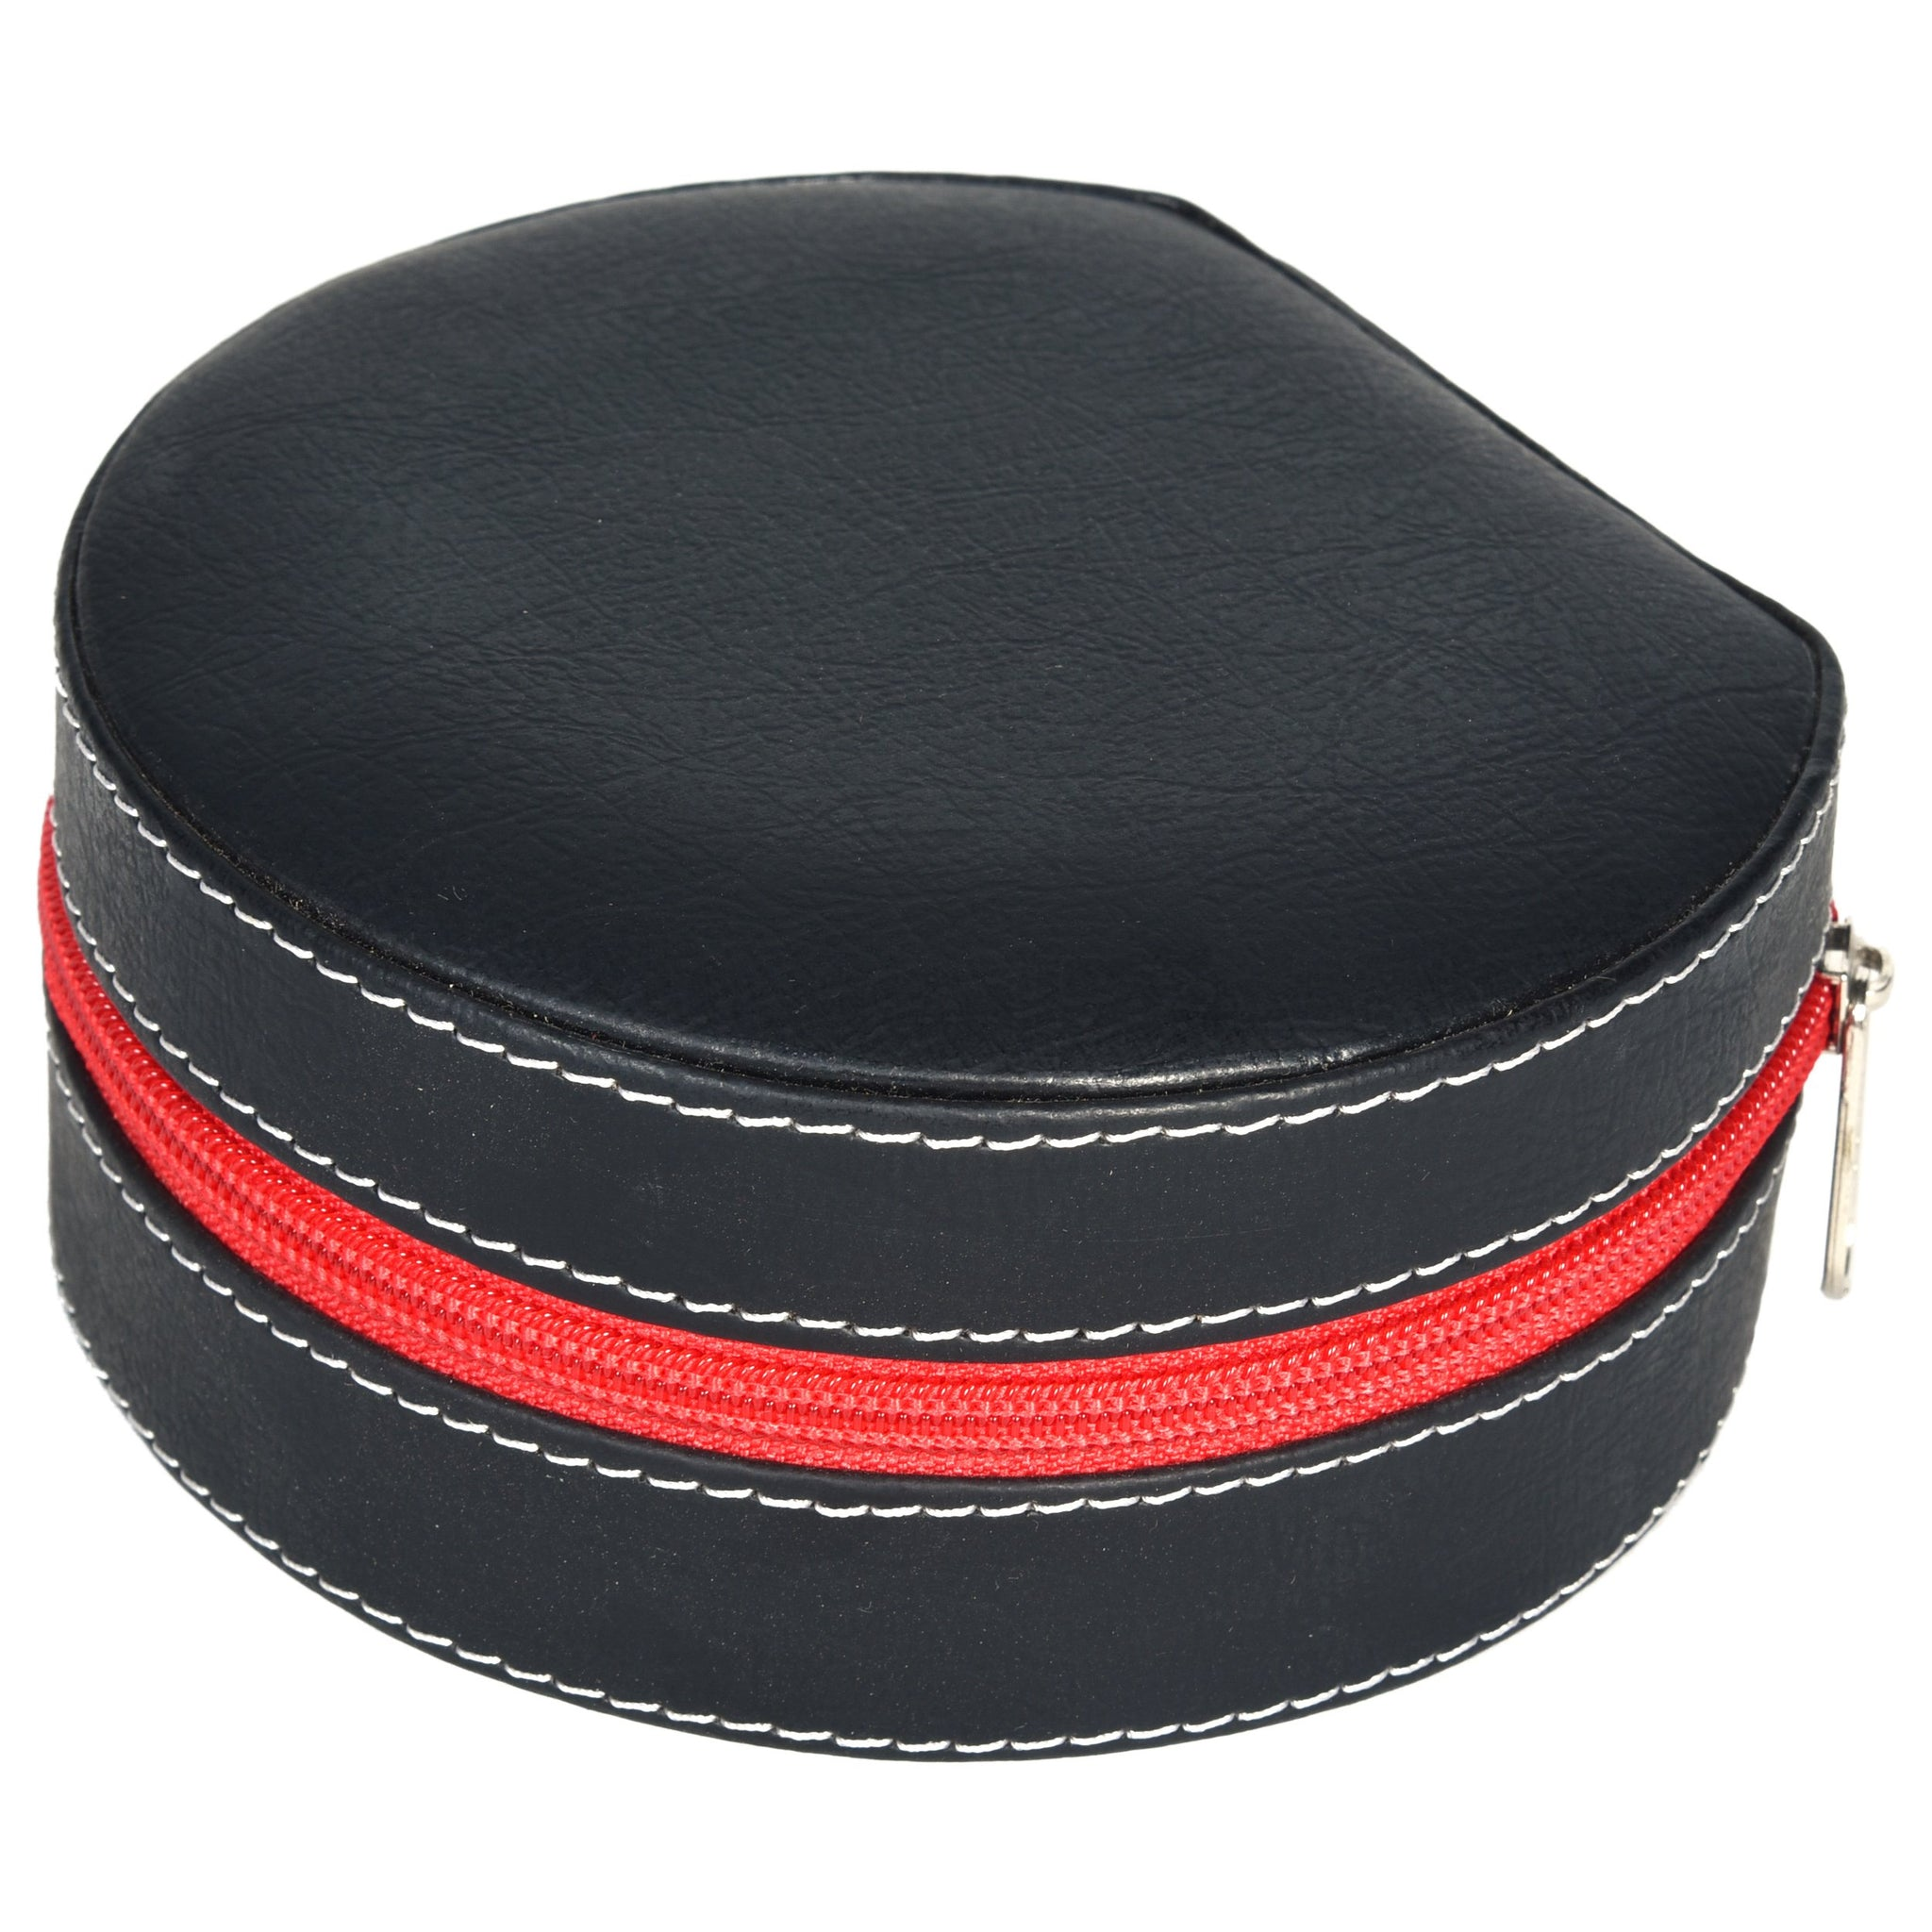 Nestasia Round Zip Case - Organiser box for Travel Jewellery Vanity - black red combination with mirror - PU Leatherite